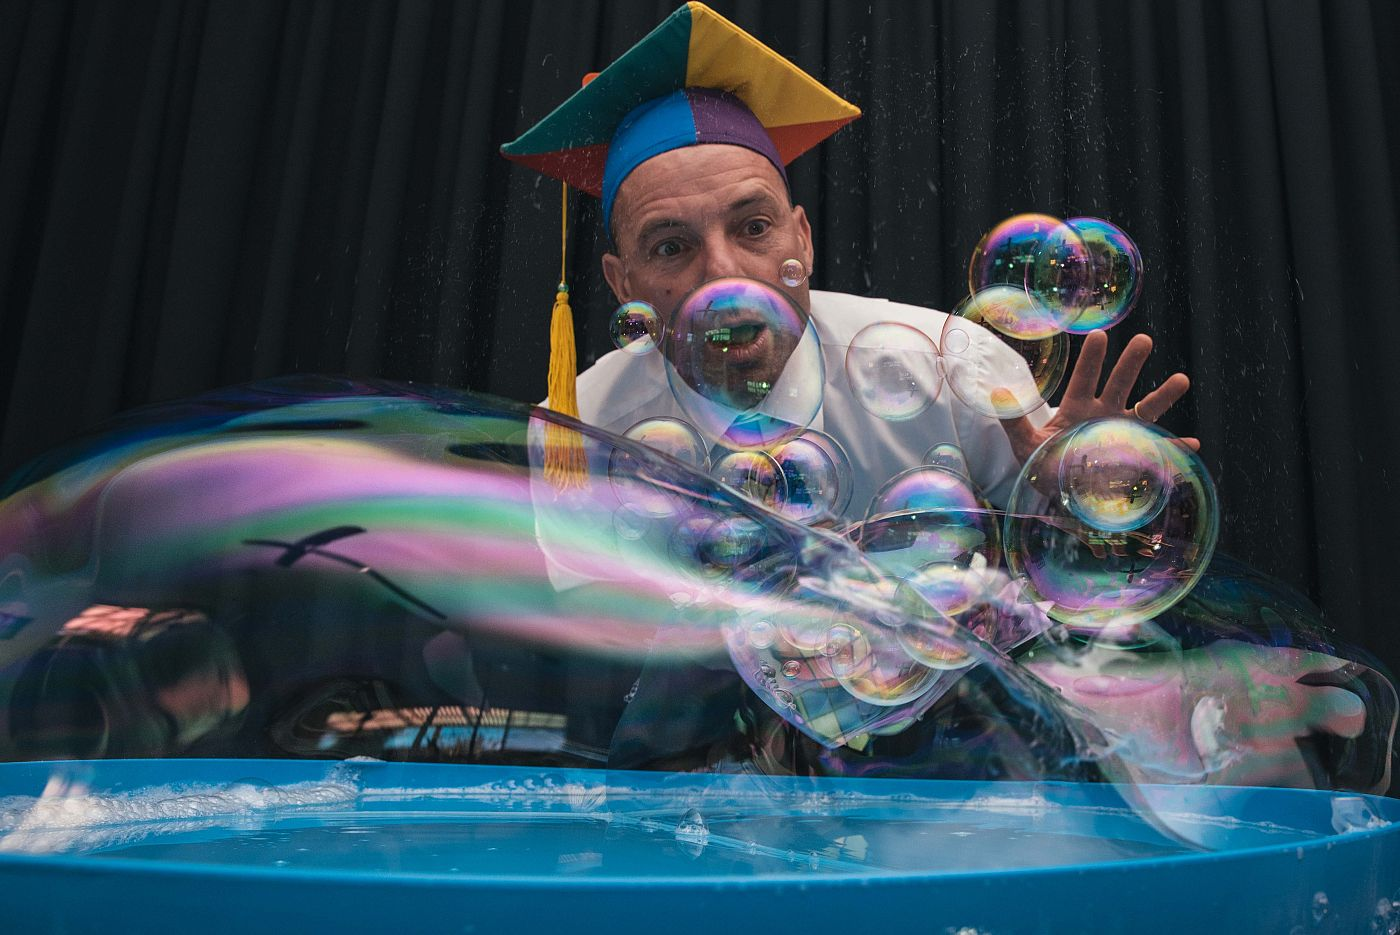 The Scientific Bubble Man